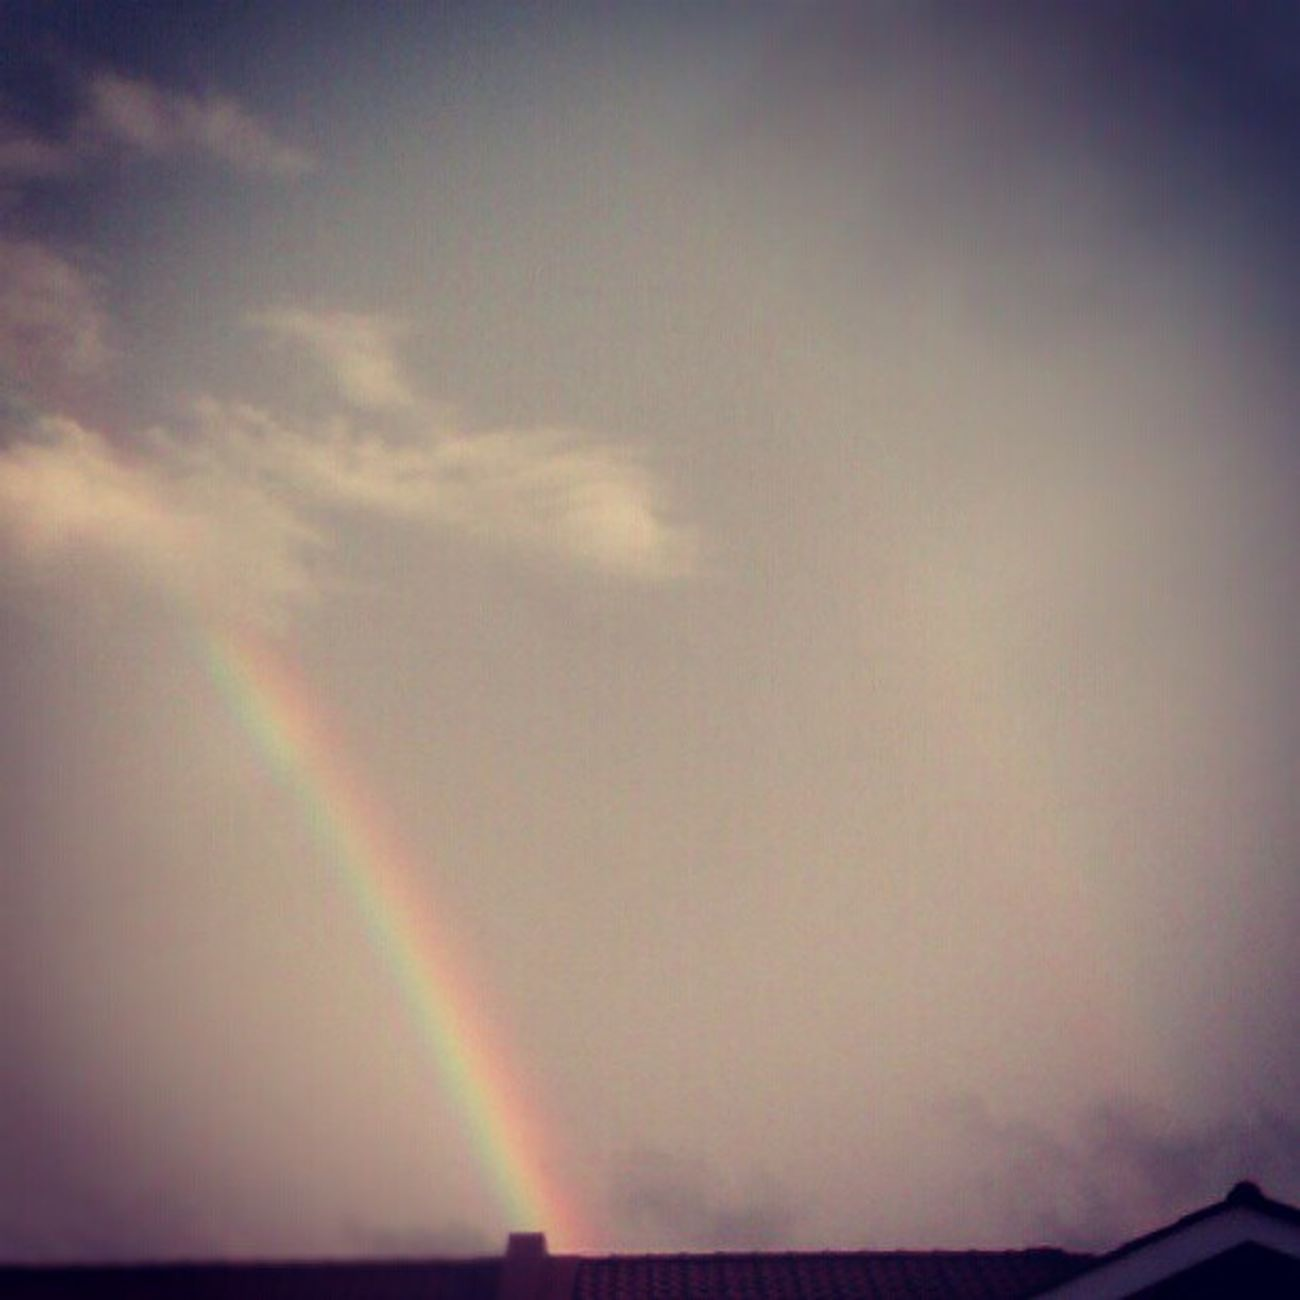 Double rainbow :D 2xTheNyan